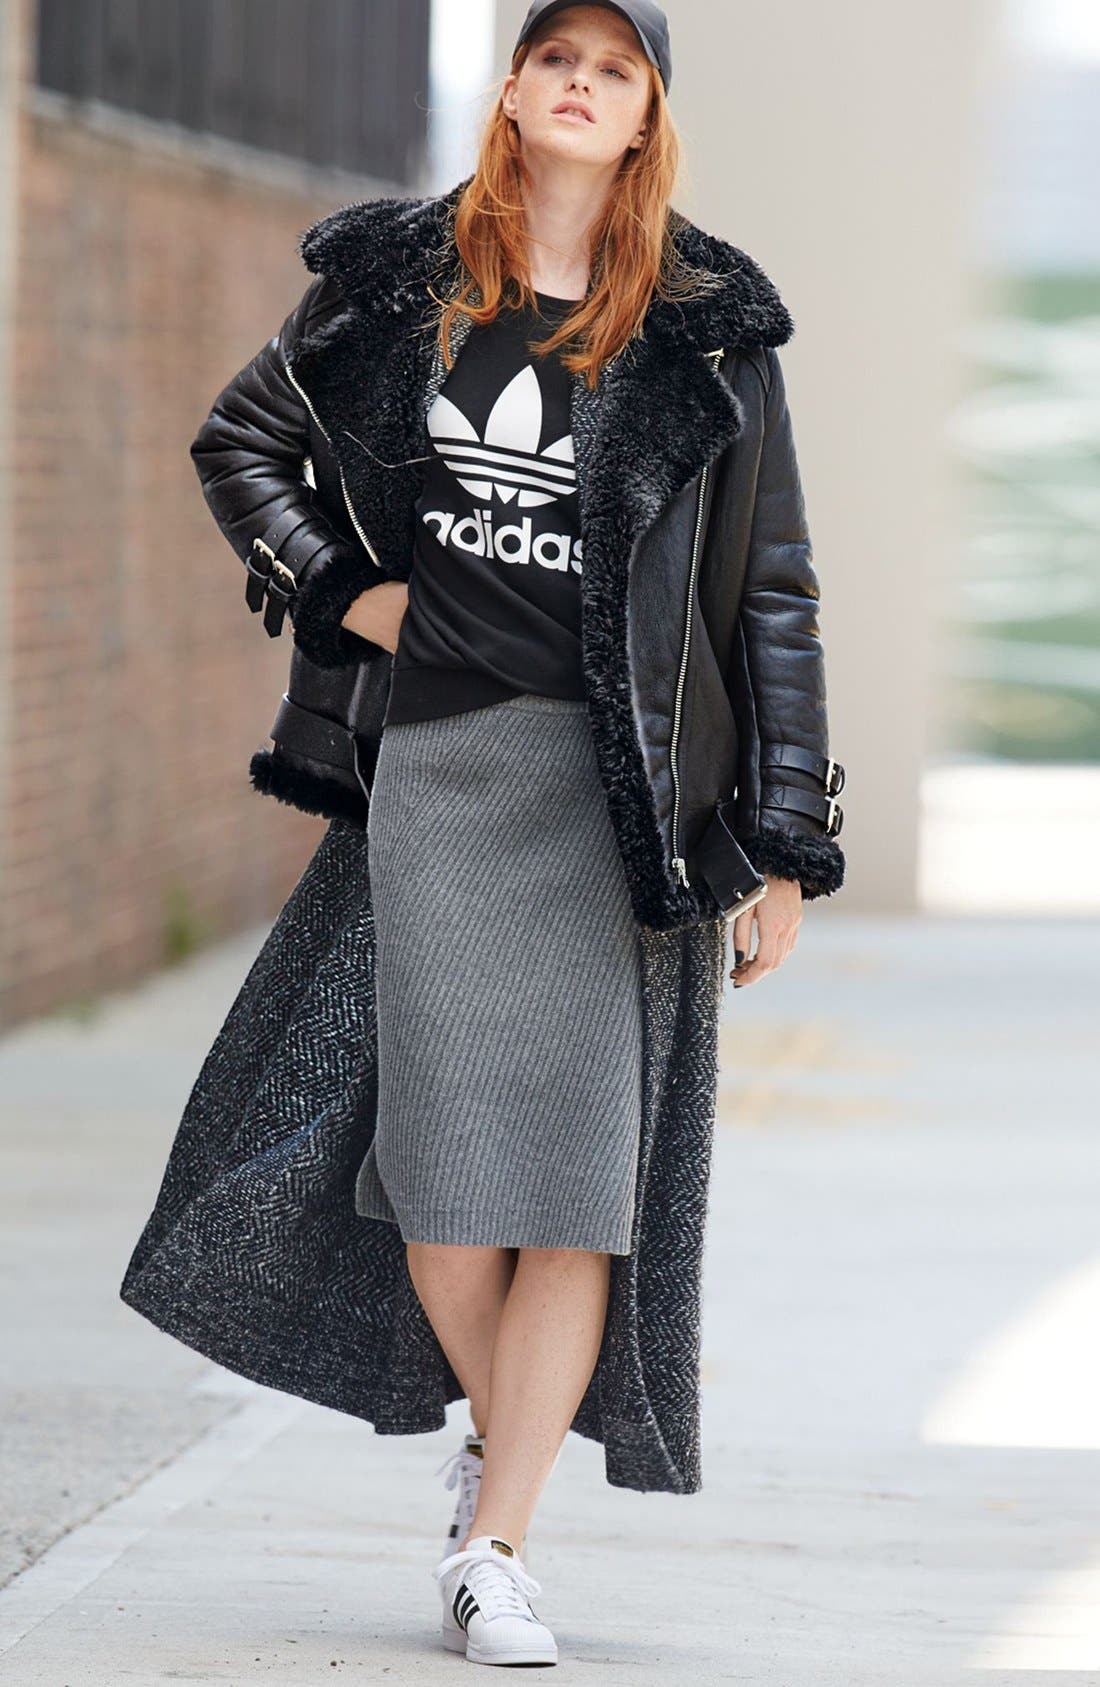 ACNE Studios Genuine Shearling Jacket, adidas Originals Sweater & Madewell Skirt Outfit with Accessories